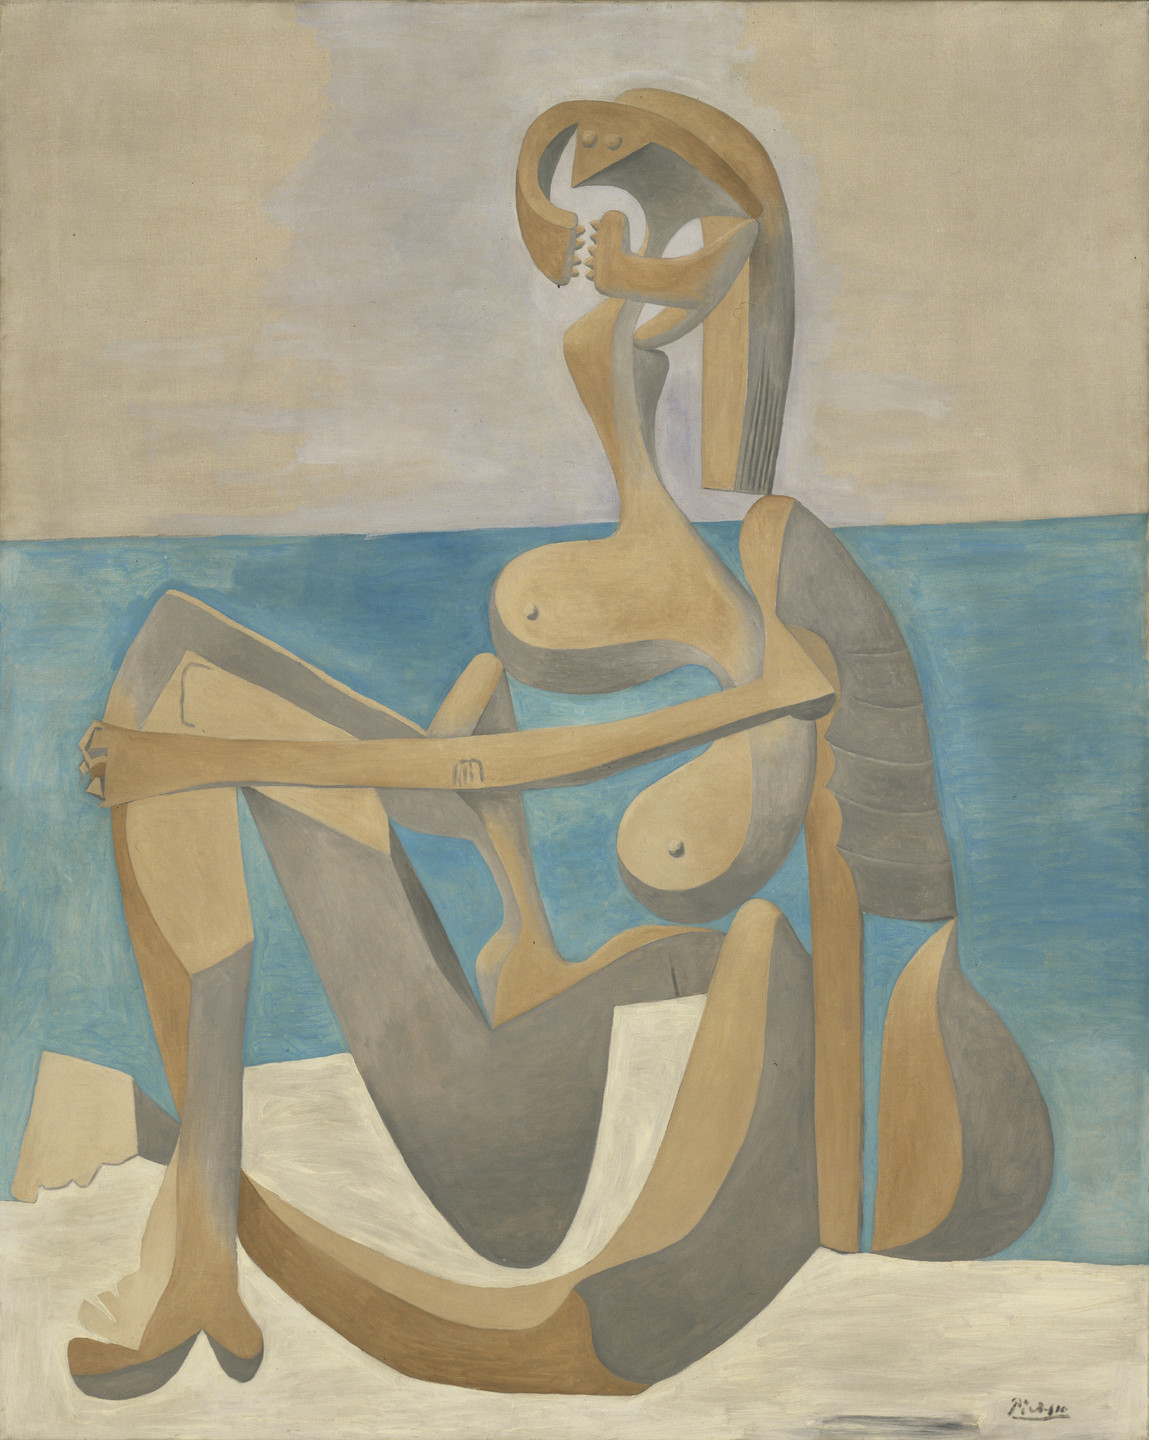 Pablo Picasso. Seated Bather. Paris, early 1930